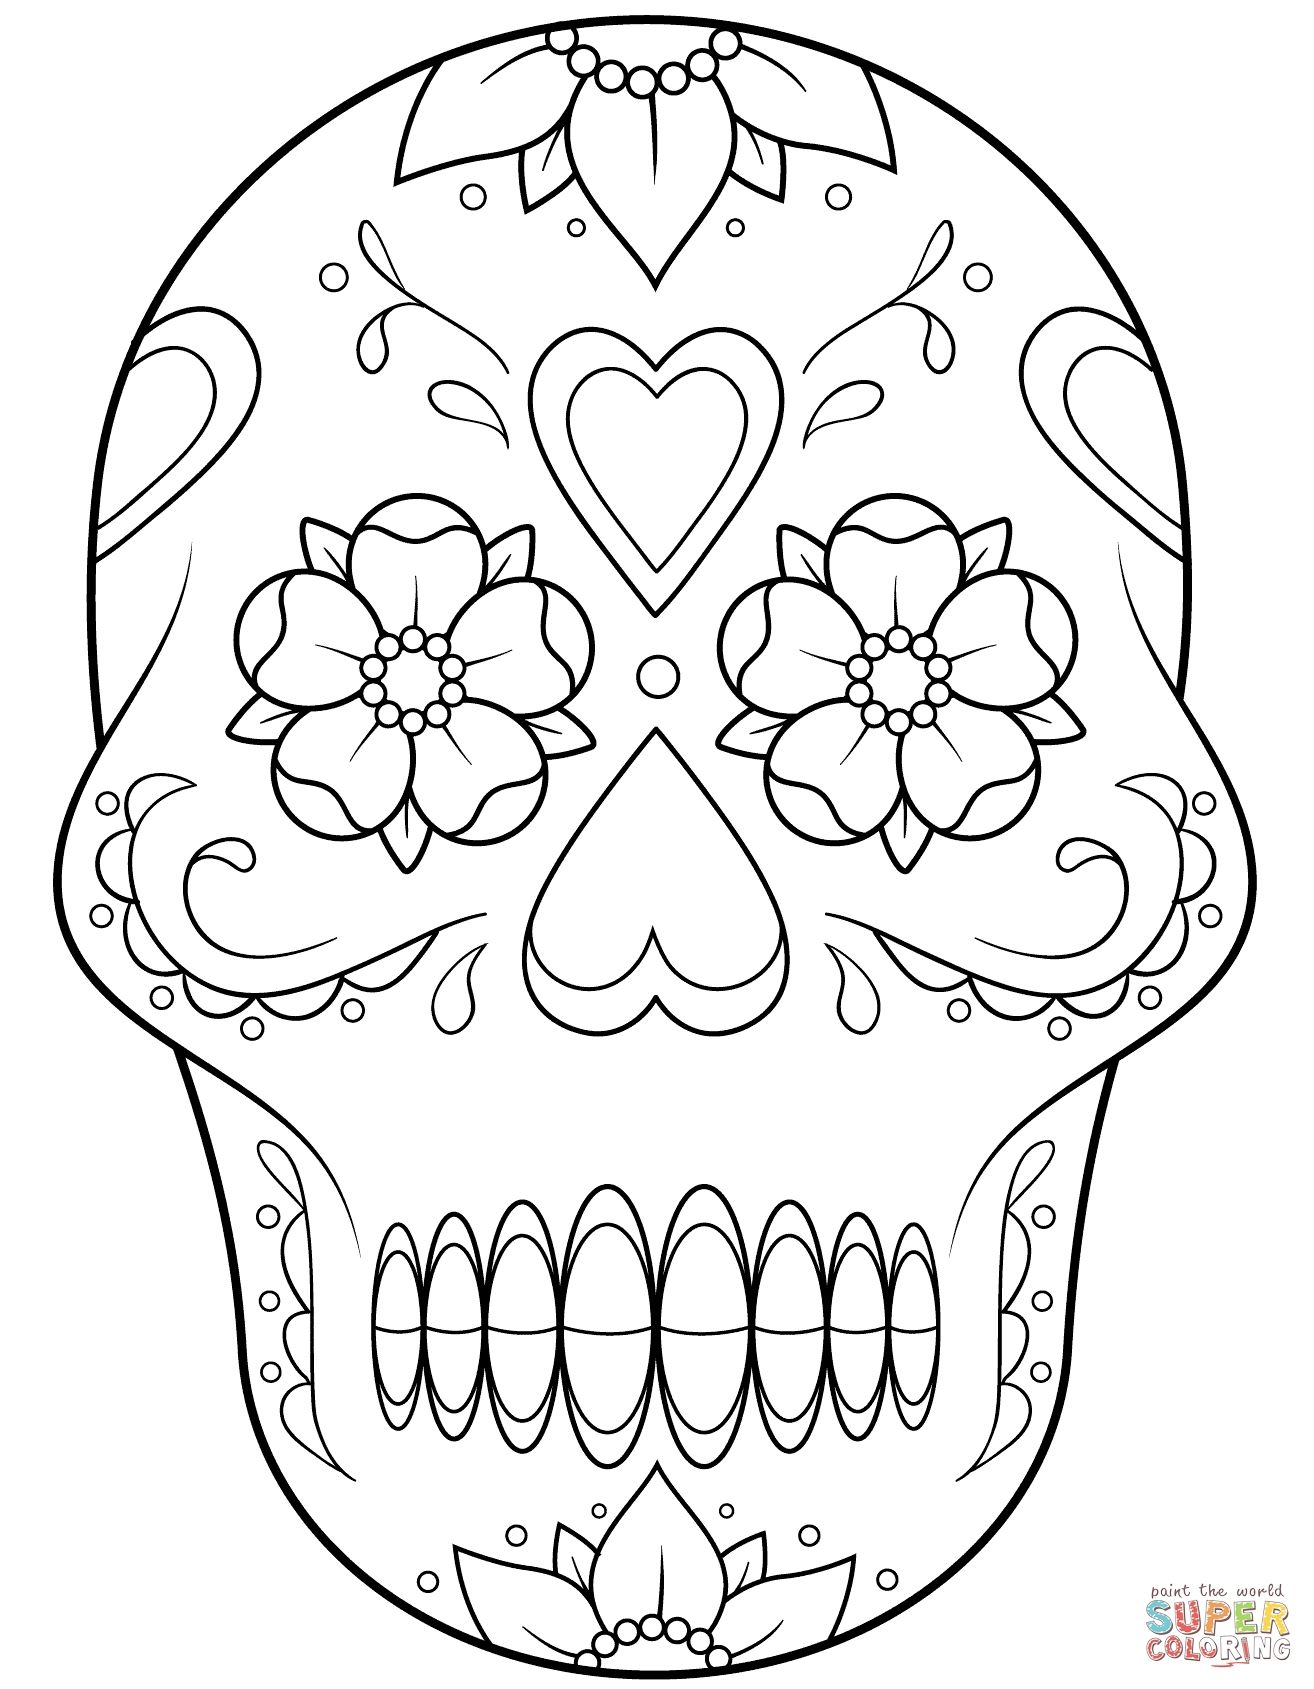 Cool Skulls Of Simple Sugar Skull Coloring Pages Collection Skull Coloring Pages Heart Coloring Pages Coloring Pages